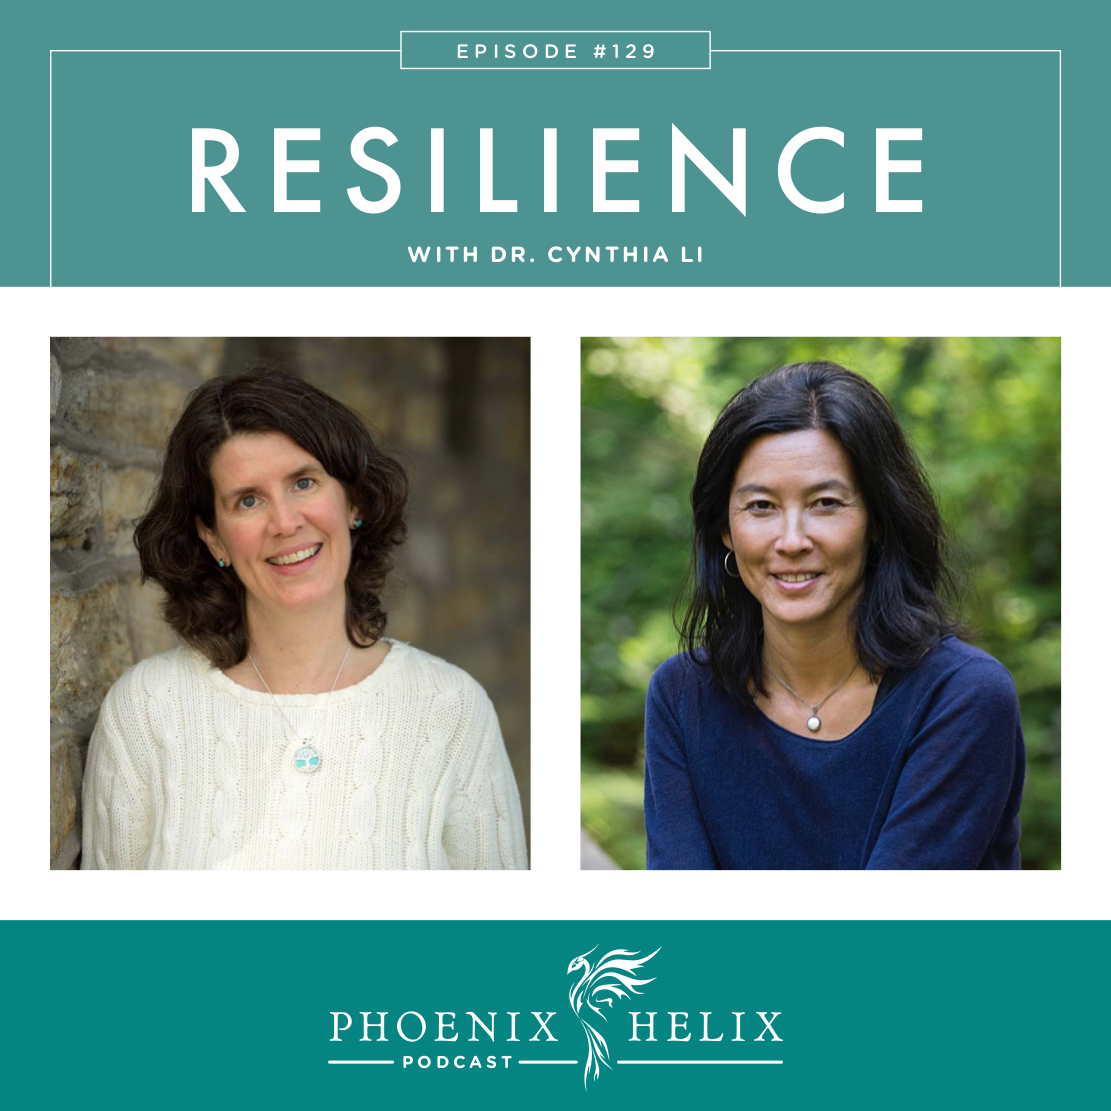 Resilience with Dr. Cynthia Li | Phoenix Helix Podcast